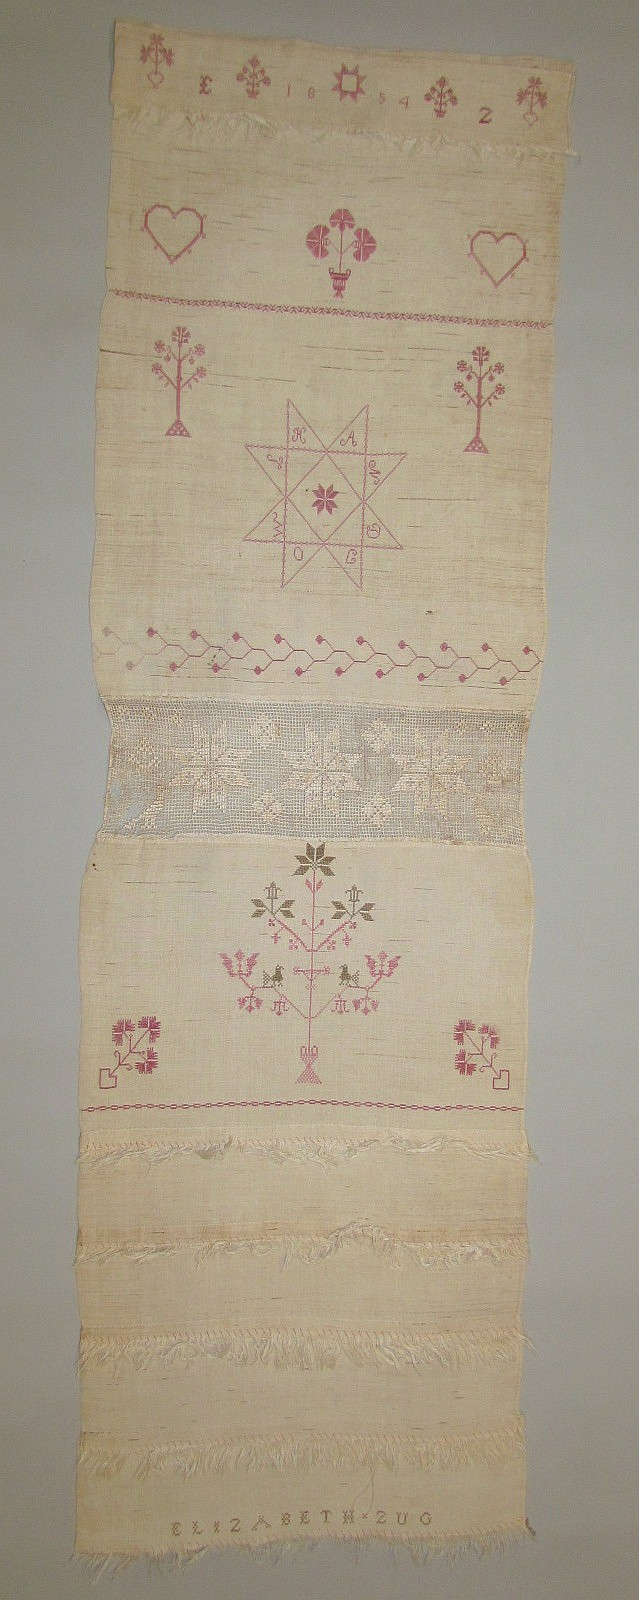 Decorated towel, Elizabeth Zug 1854